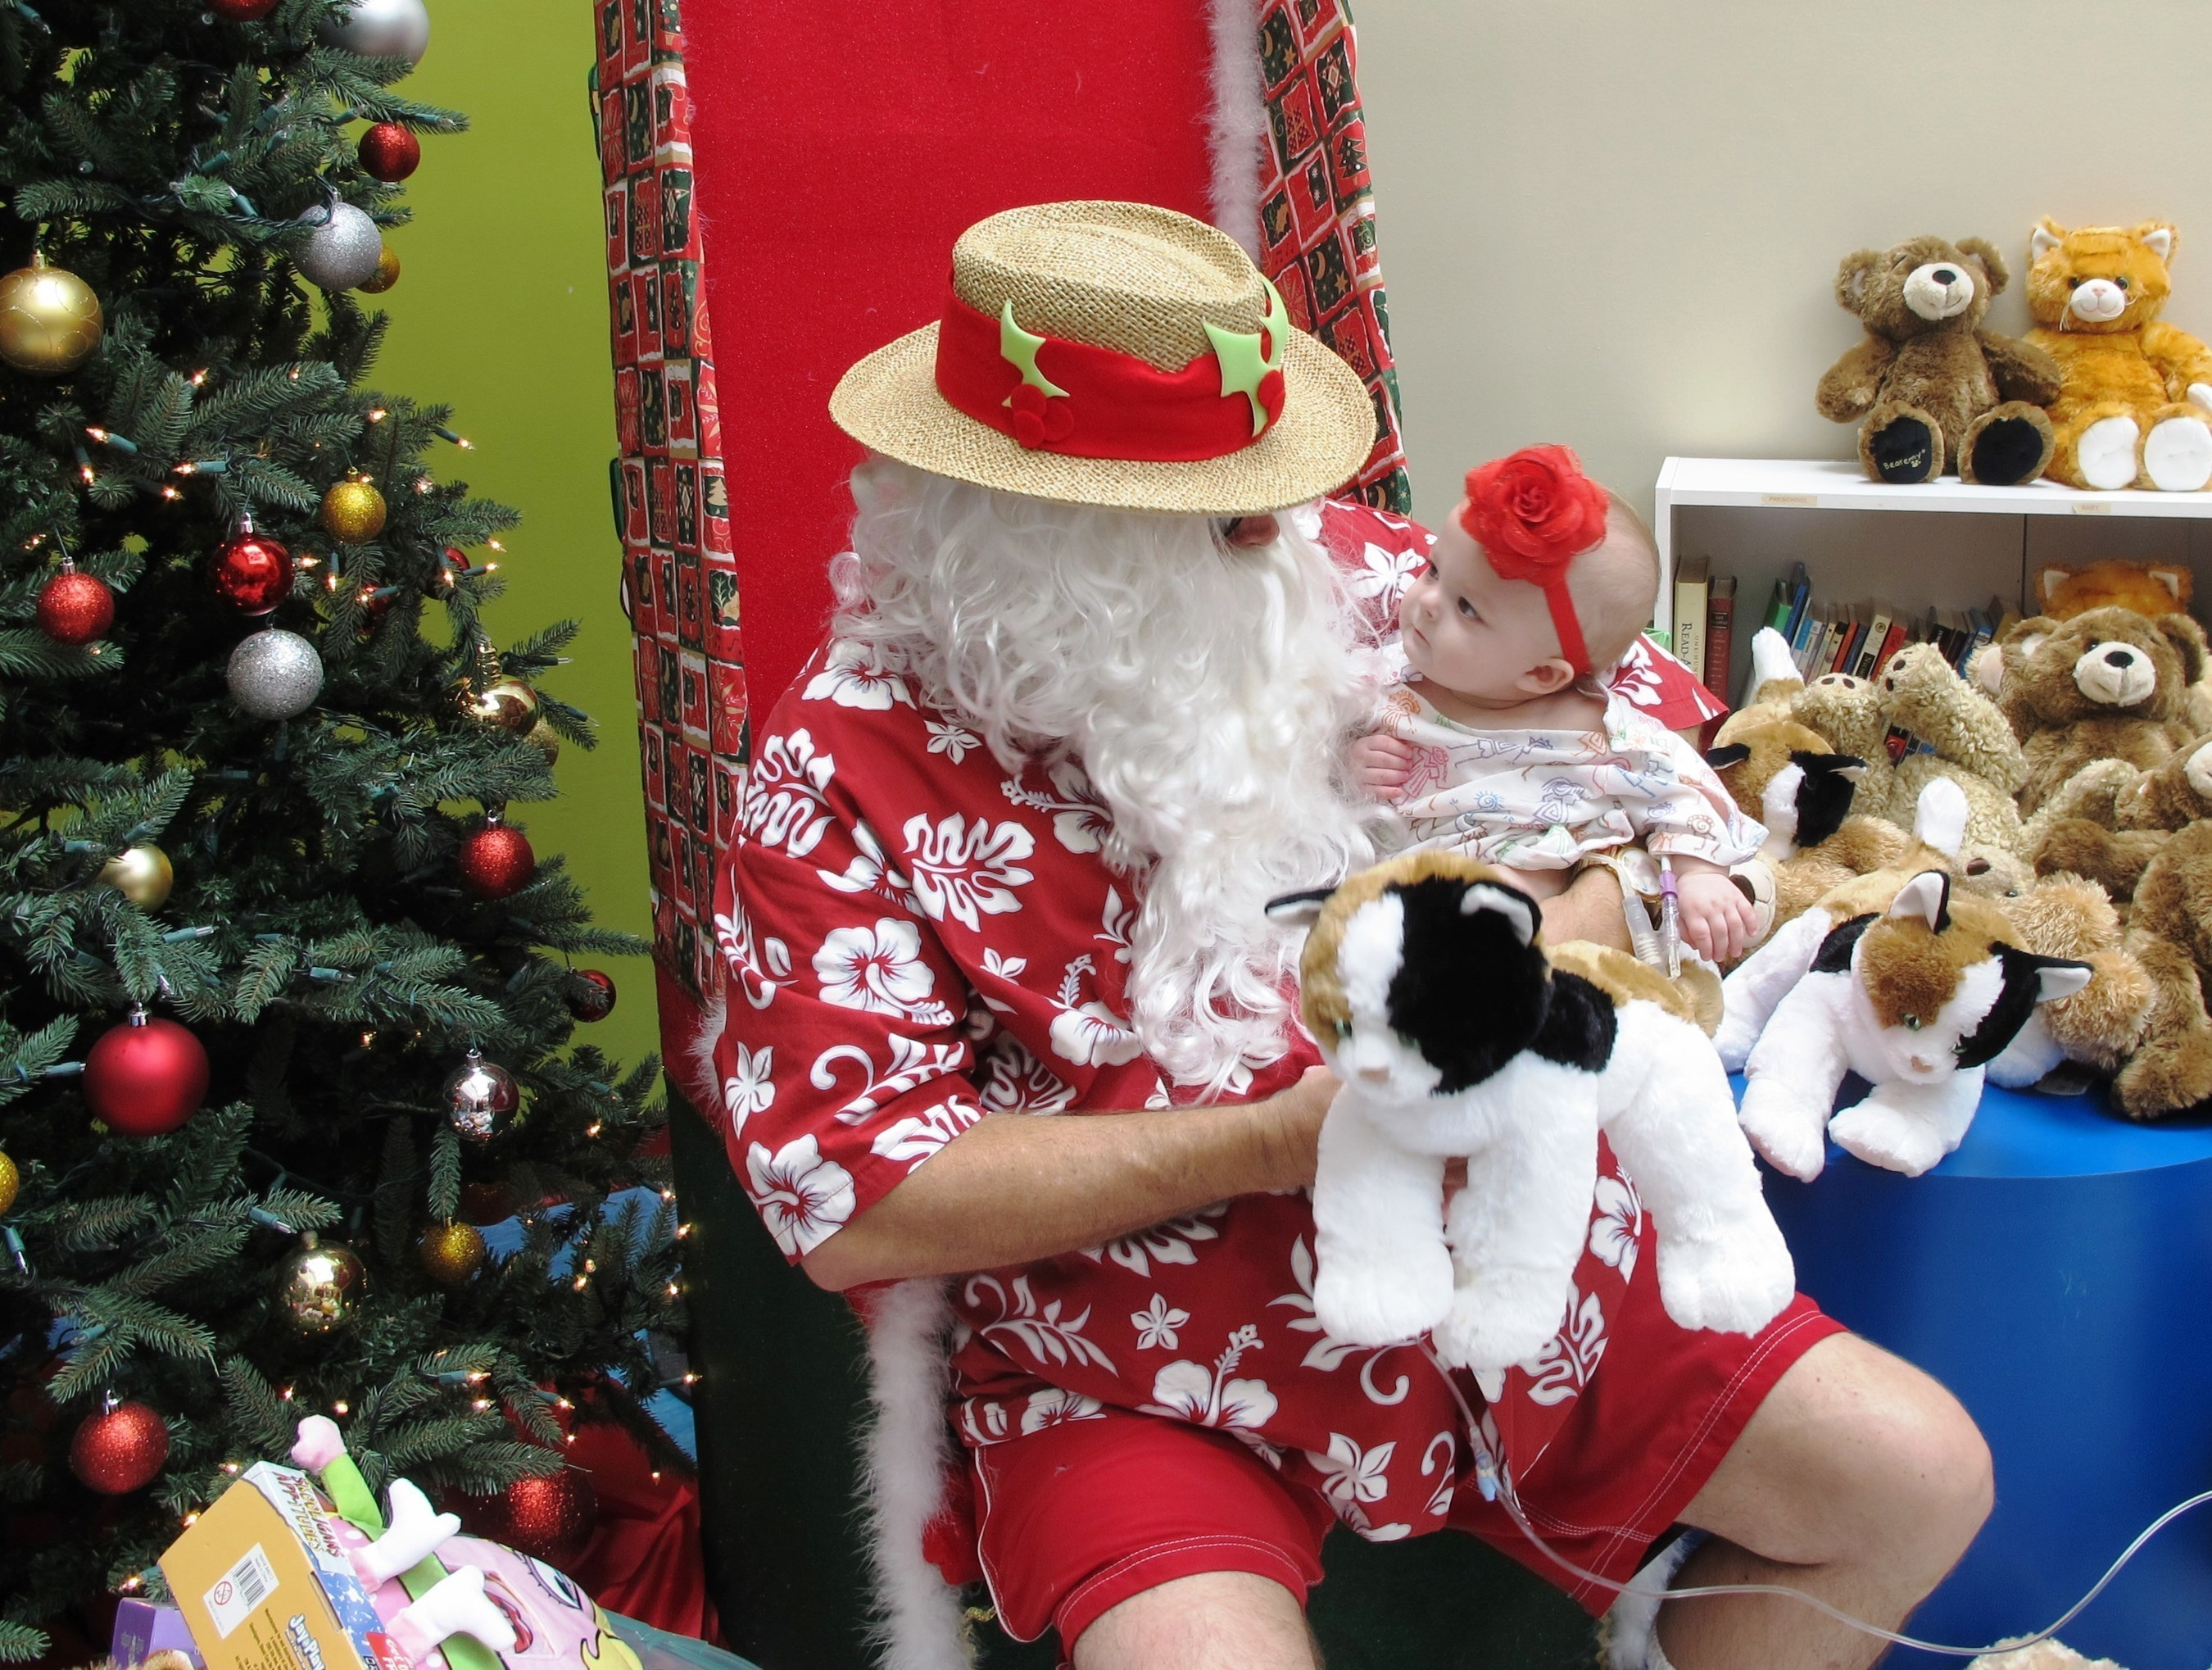 Donations made during St. Joseph's Children's Hospital's Christmas in July drive will help provide toys, activities like art and music therapy and other distraction experiences for patients like Ella, who has spent months of her young life in the hospital.